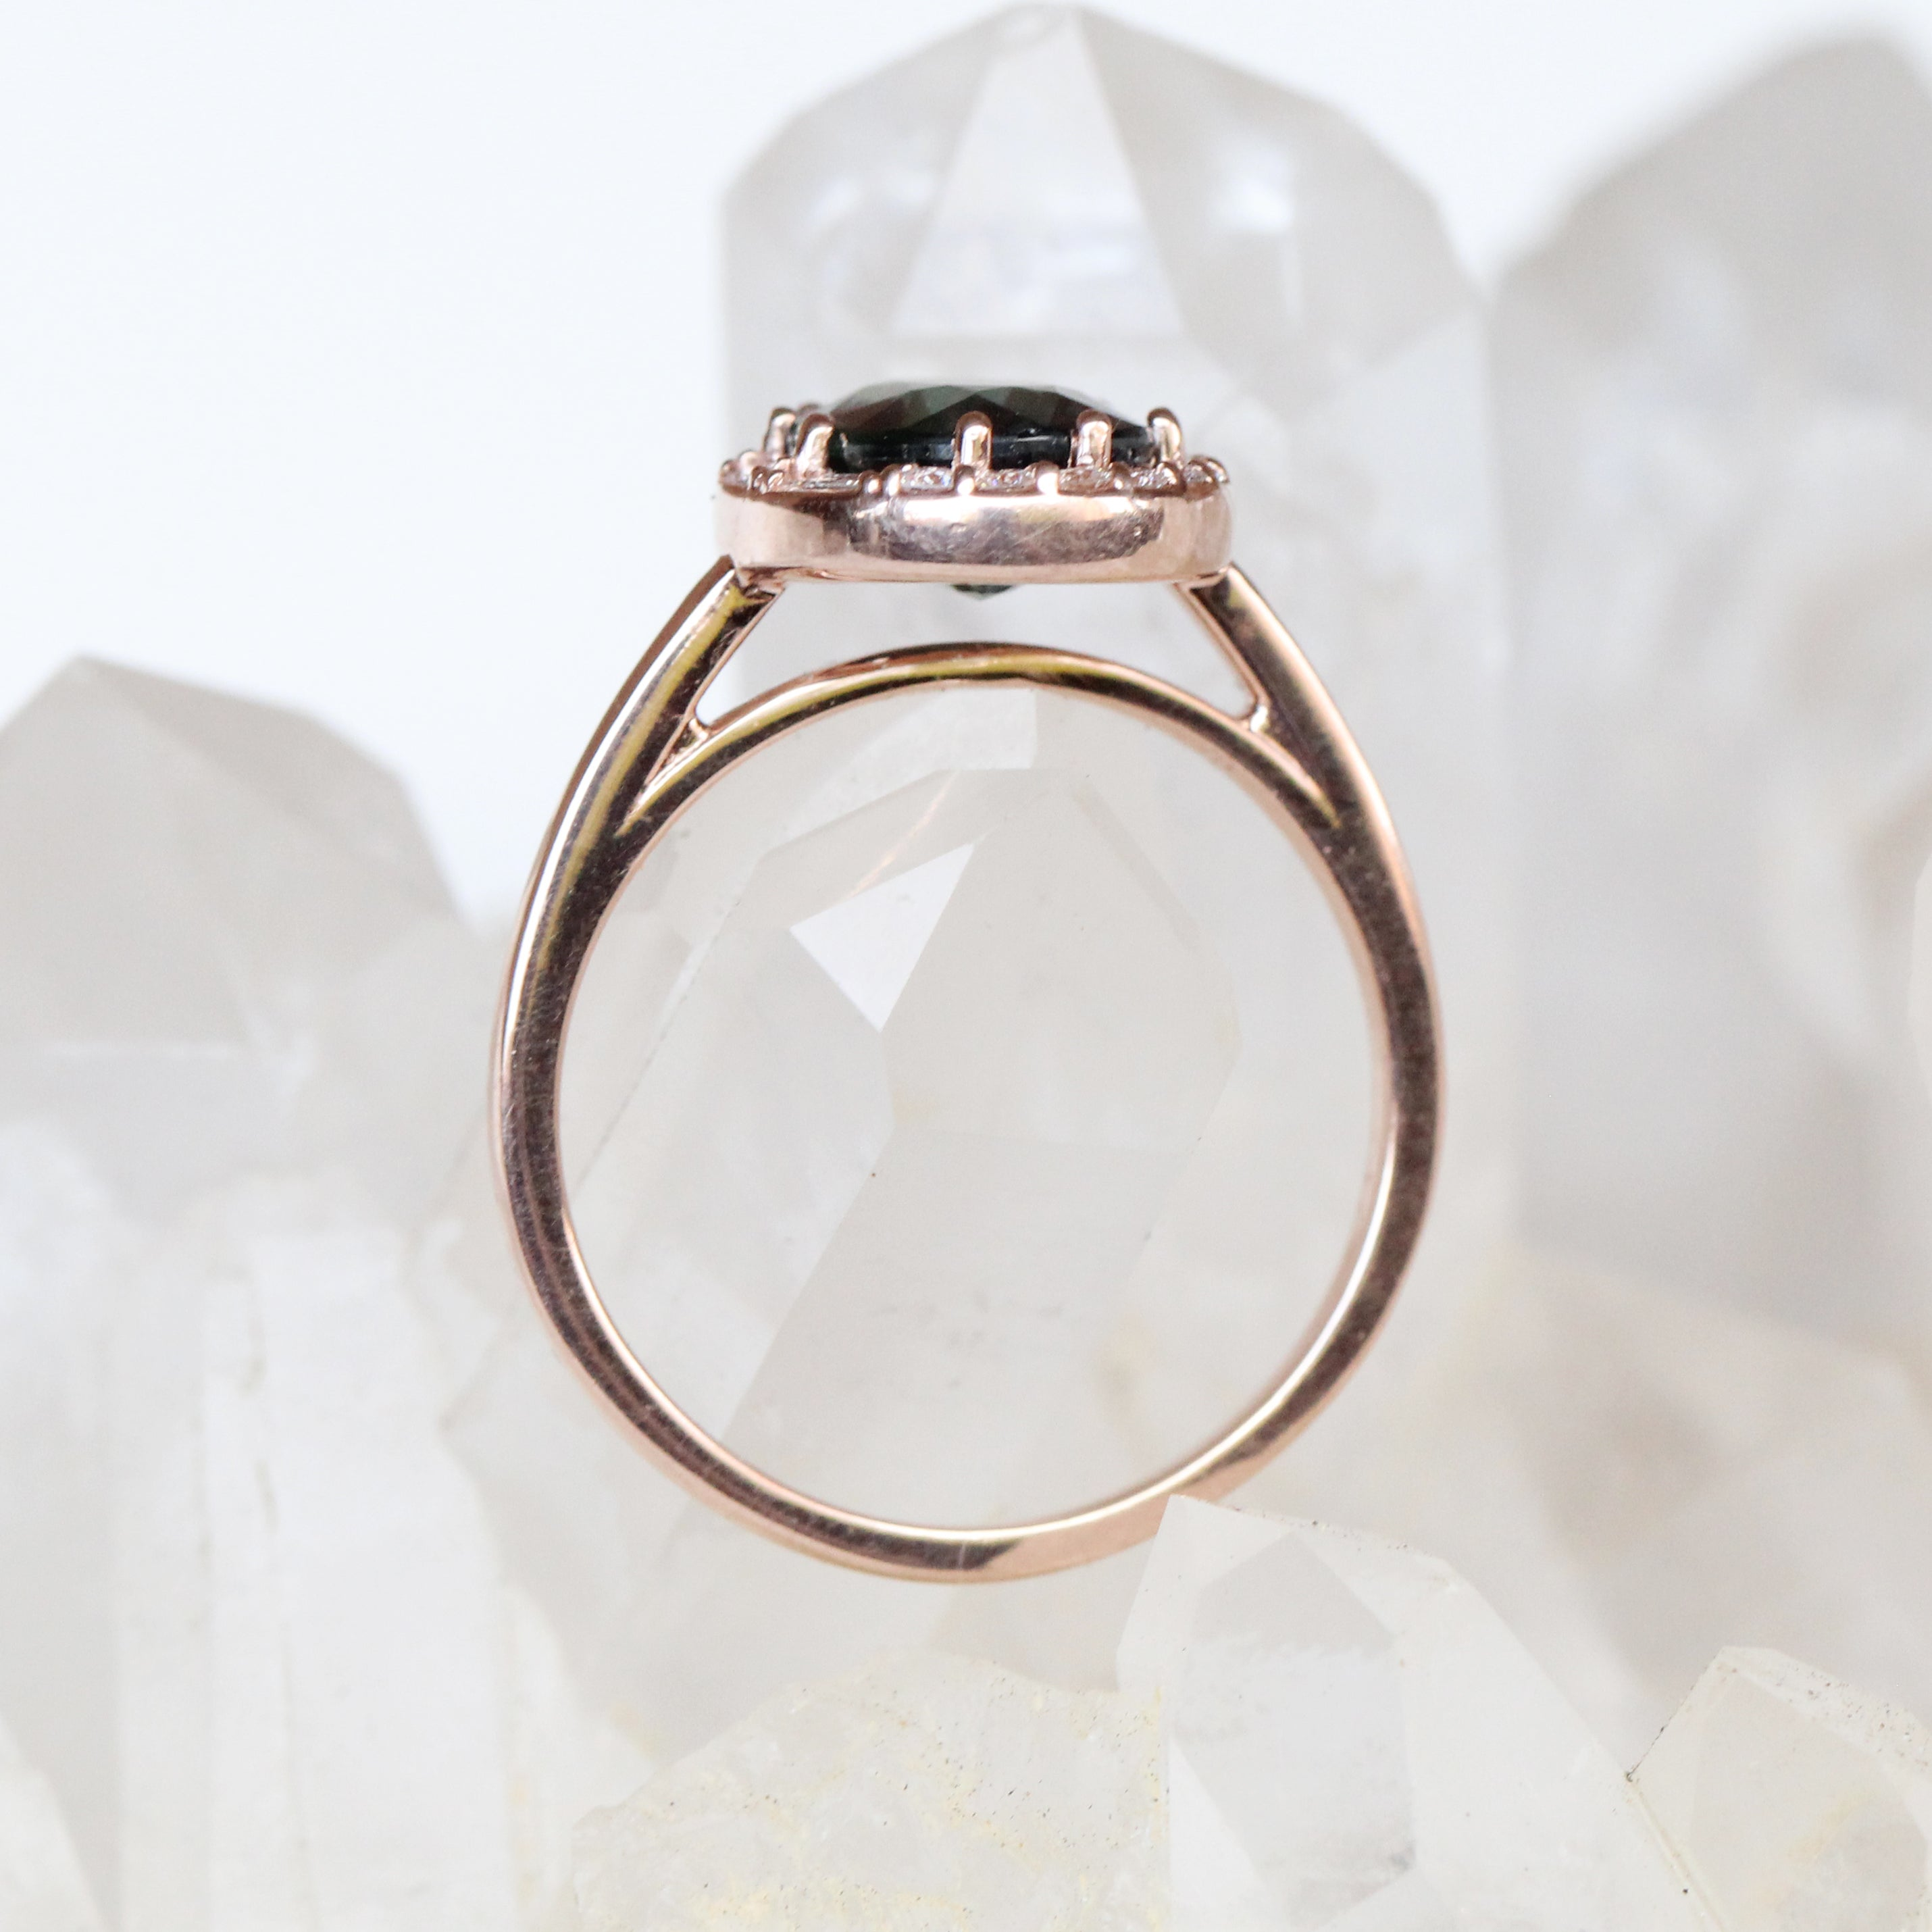 Collins Ring with a Teal Oval Sapphire in 10k Rose Gold - Ready to Size and Ship - Salt & Pepper Celestial Diamond Engagement Rings and Wedding Bands  by Midwinter Co.